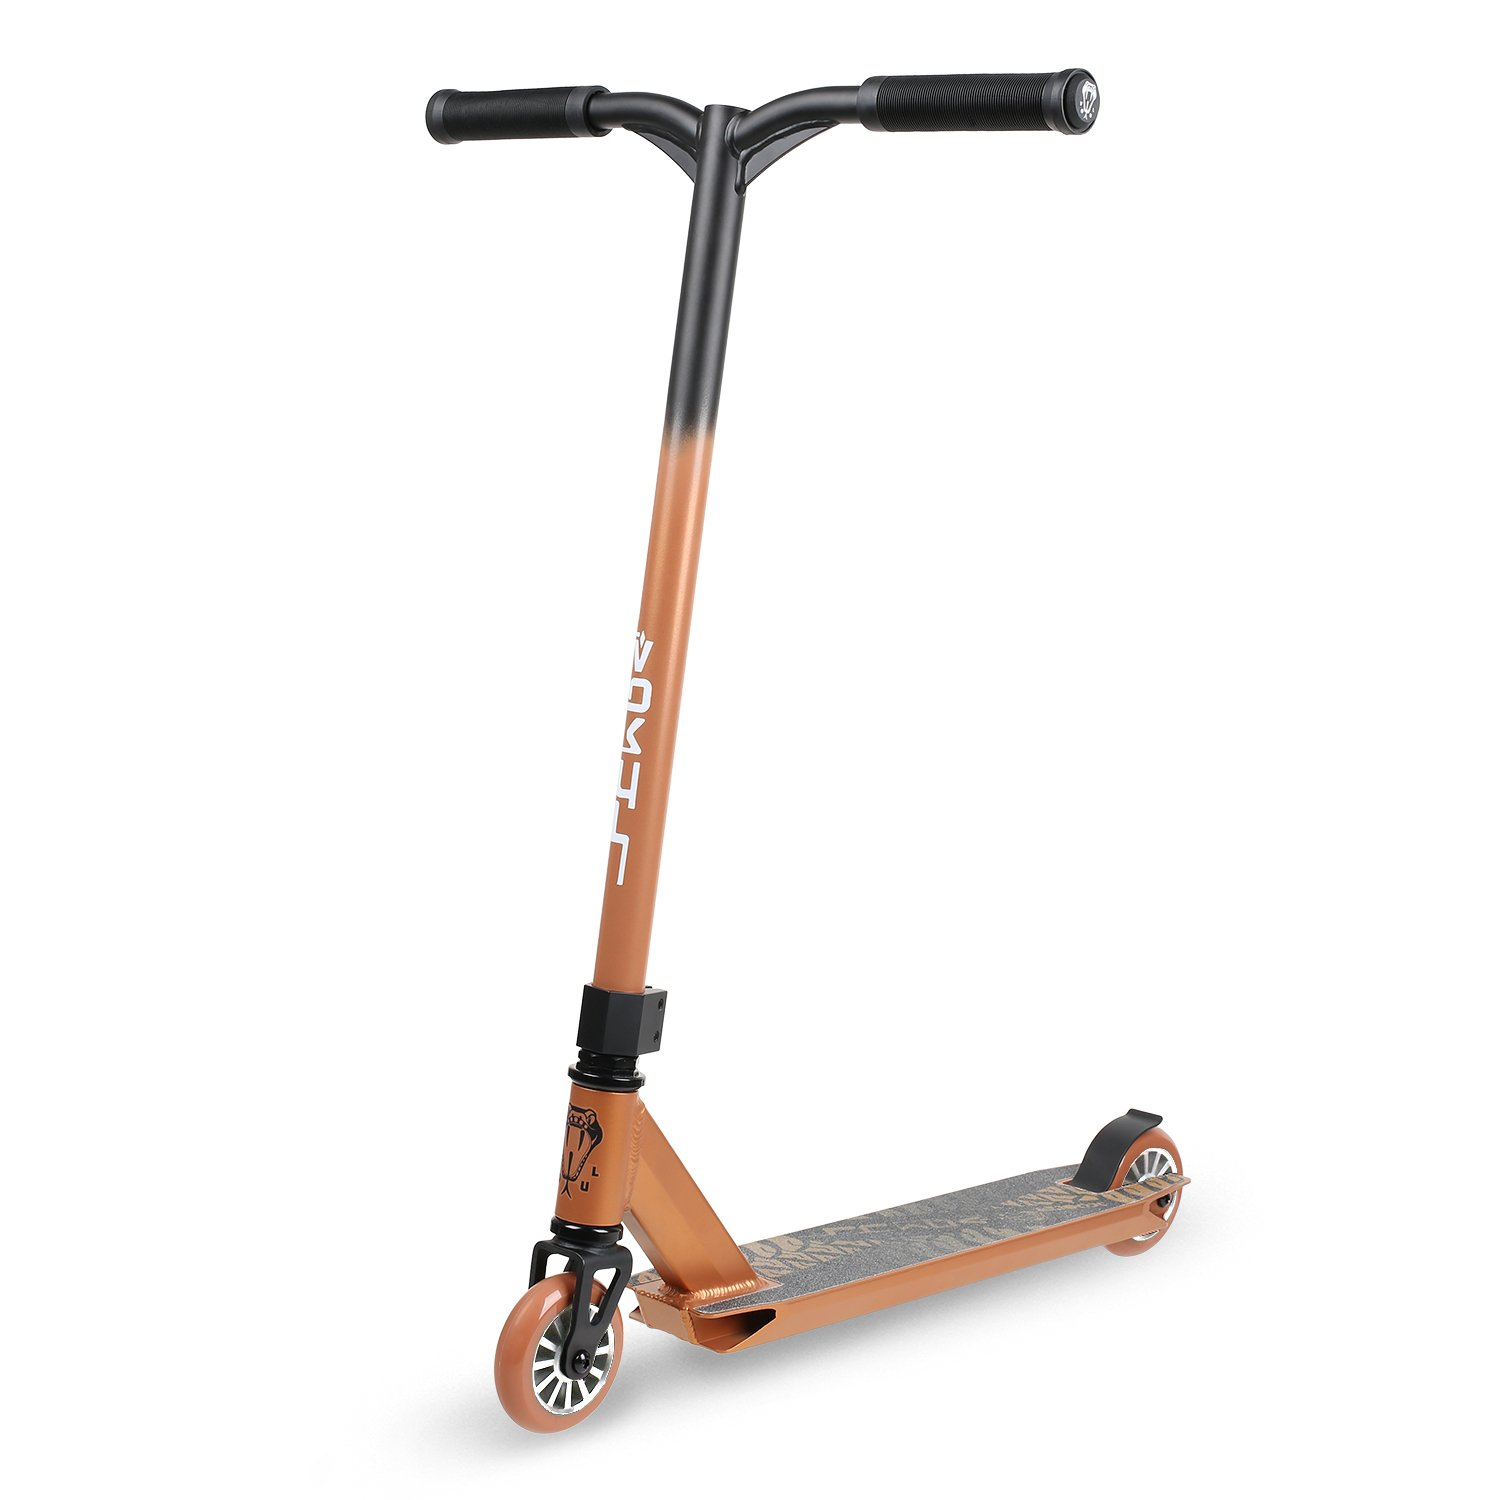 Vokul TRII S Freestyle Tricks Pro Stunt Scooter - Best Entry Level Pro Scooter - 20 W23.2 H CrMo4130 Chromoly Handlebar - Reinforced 20 L4.1 W Deck, Integral Stable Performance TRII S1